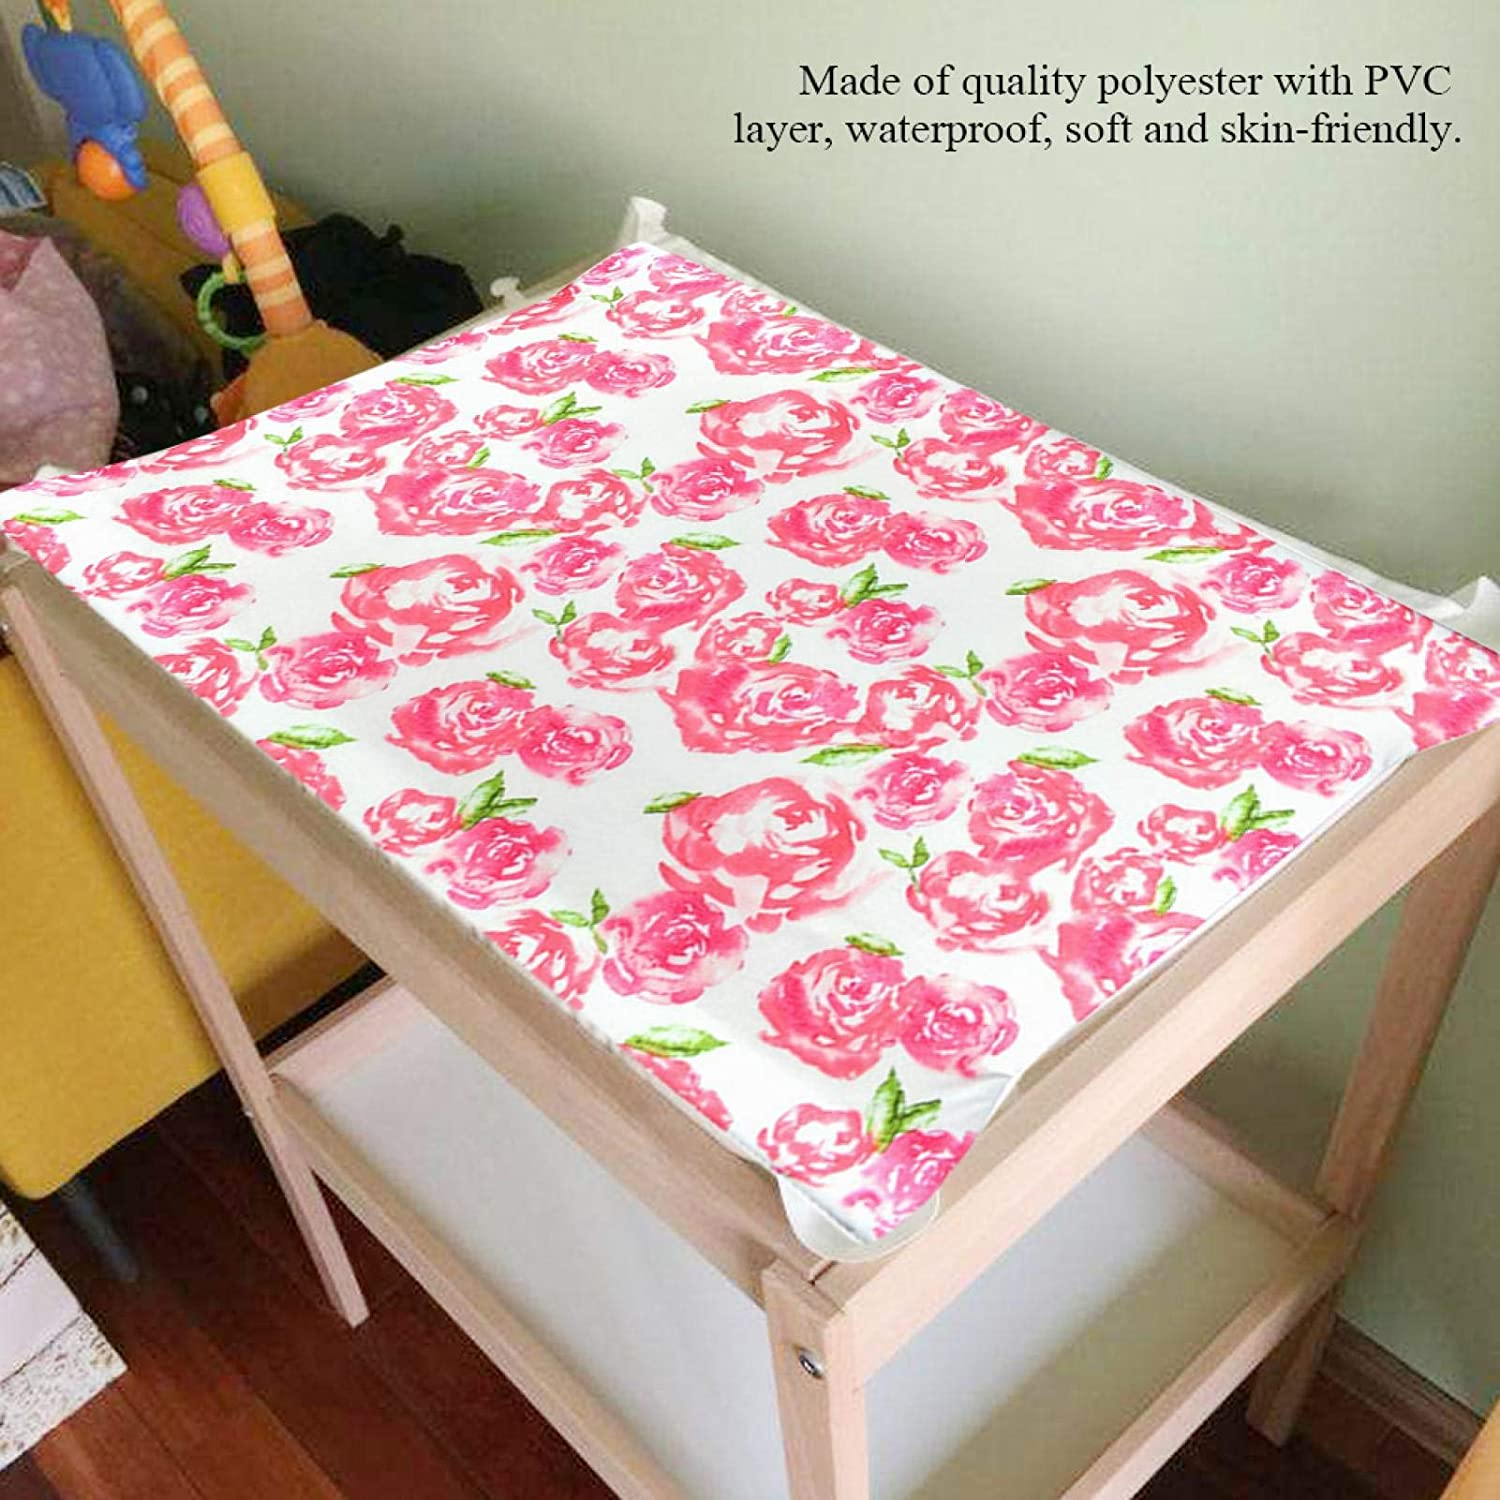 arrow Changing Table Pad Cover Asixxsix Washable Comfortable Changing Mat Cover PVC Layer for Baby